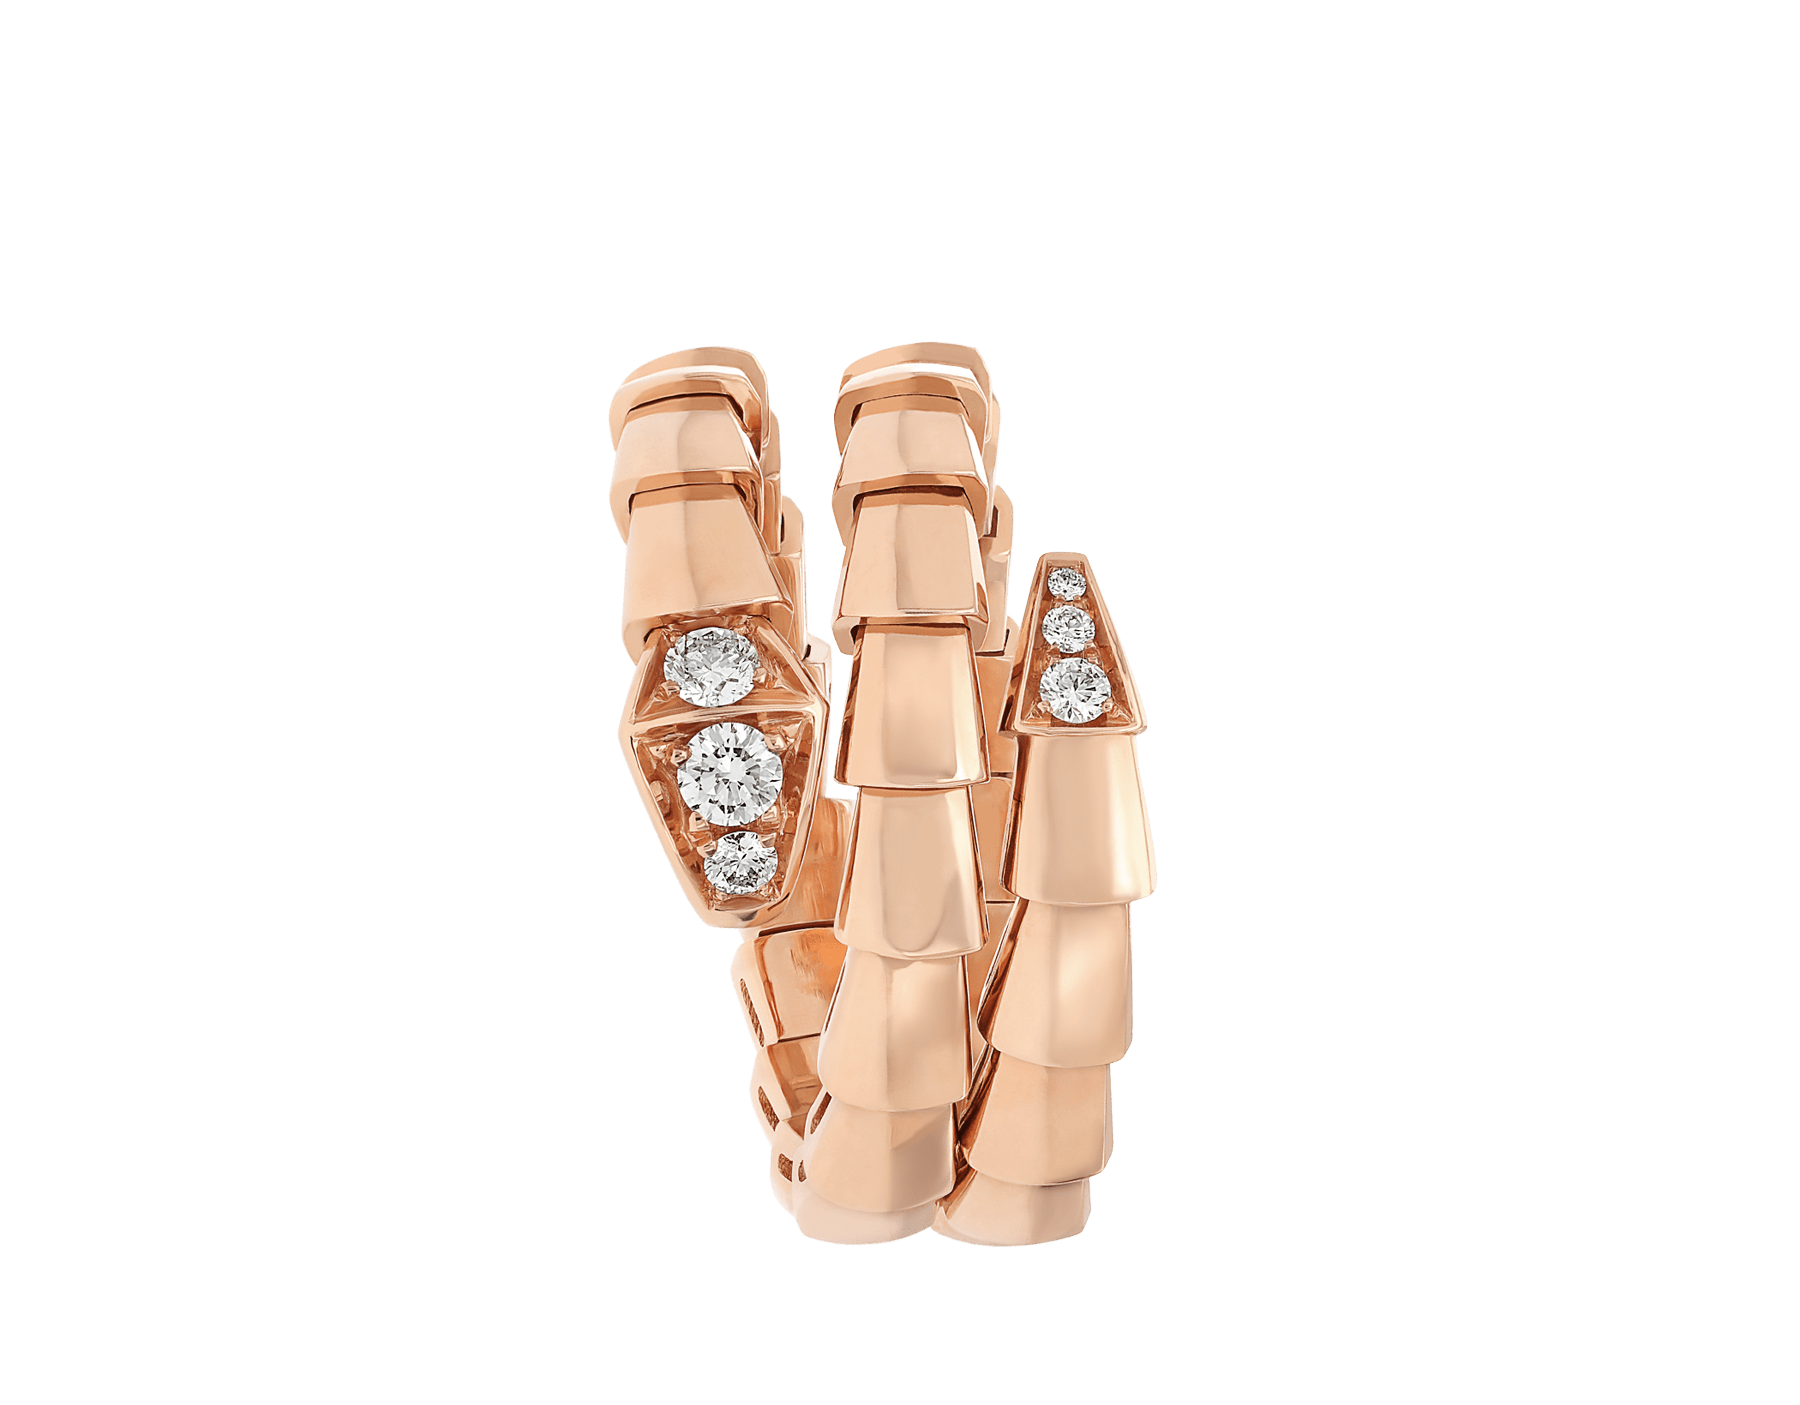 Serpenti Viper two-coil 18 kt rose gold ring, set with demi-pavé diamonds AN858824 image 2